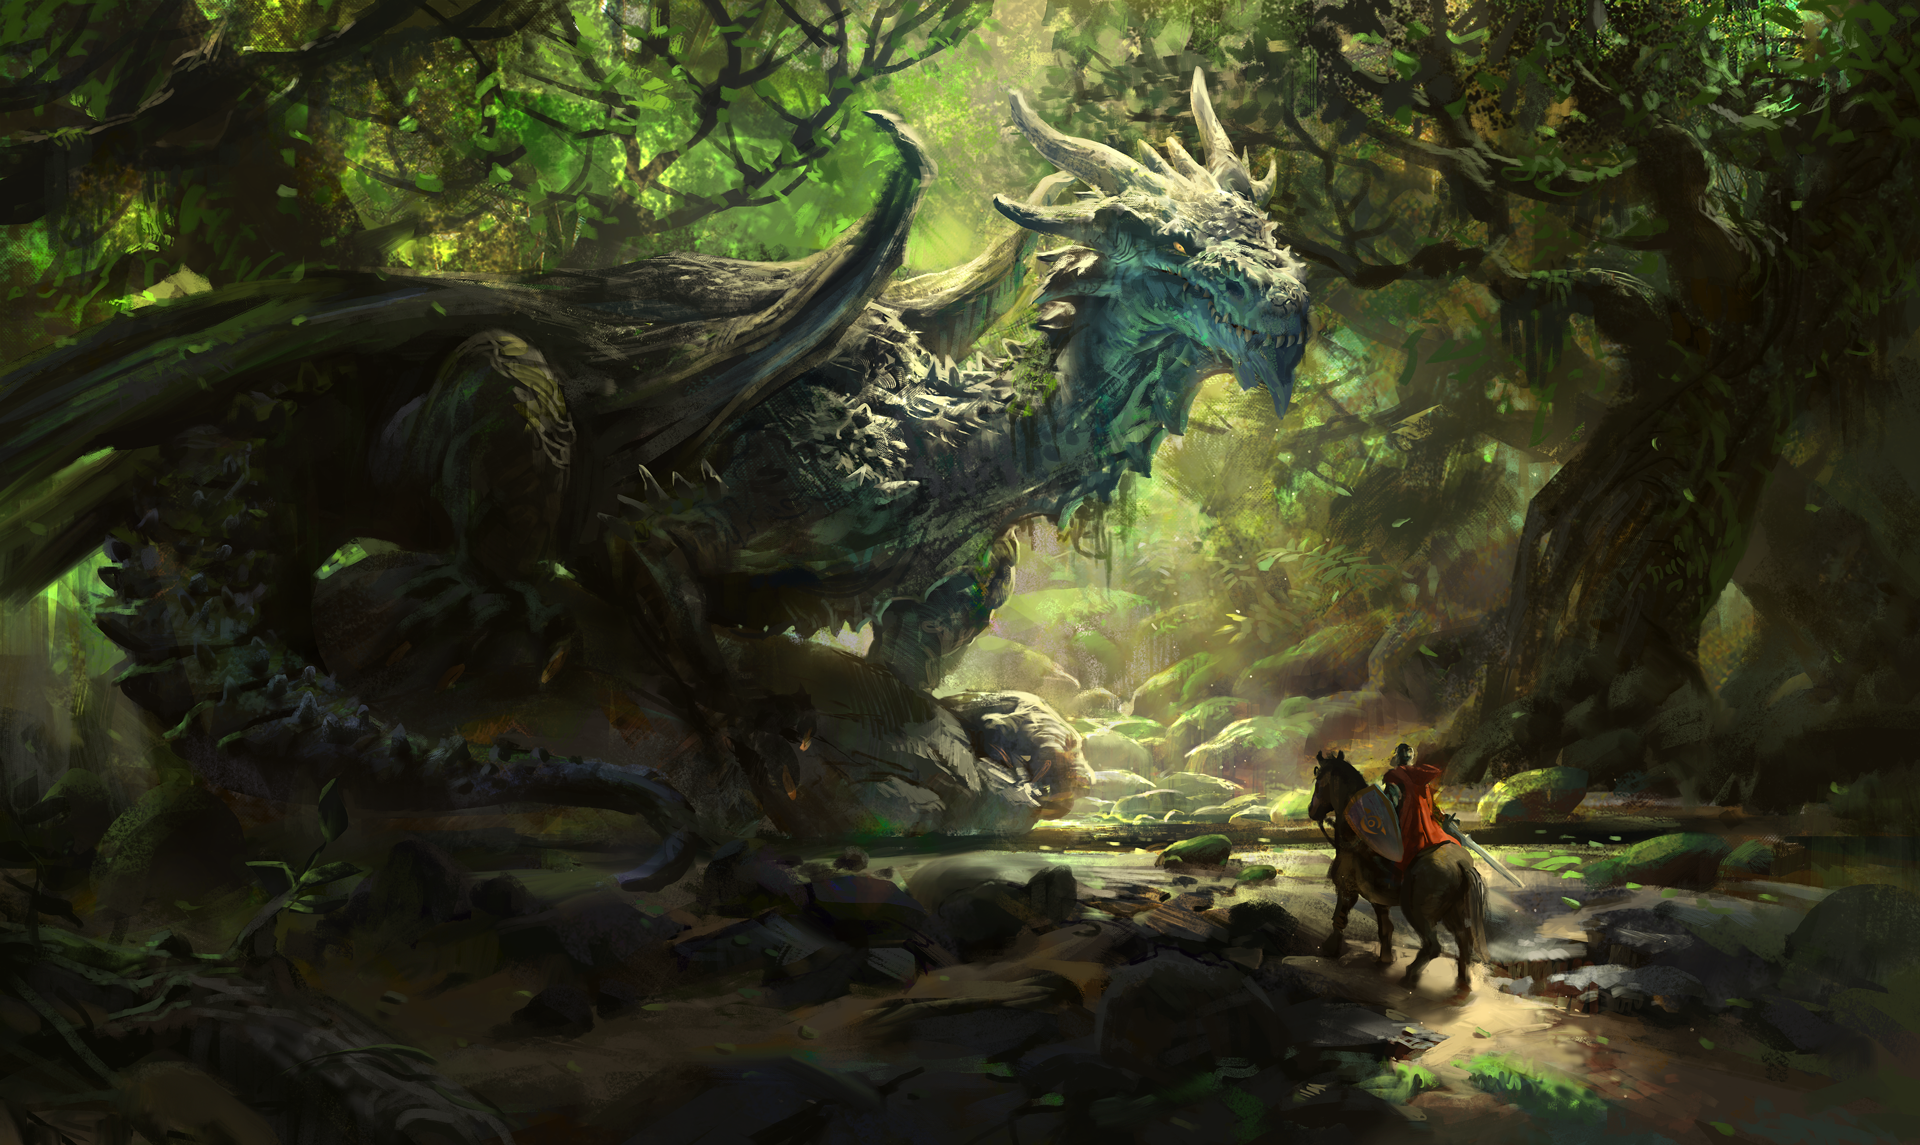 Joseph The Ancient Forest Dragon By MikeAzevedo On DeviantArt